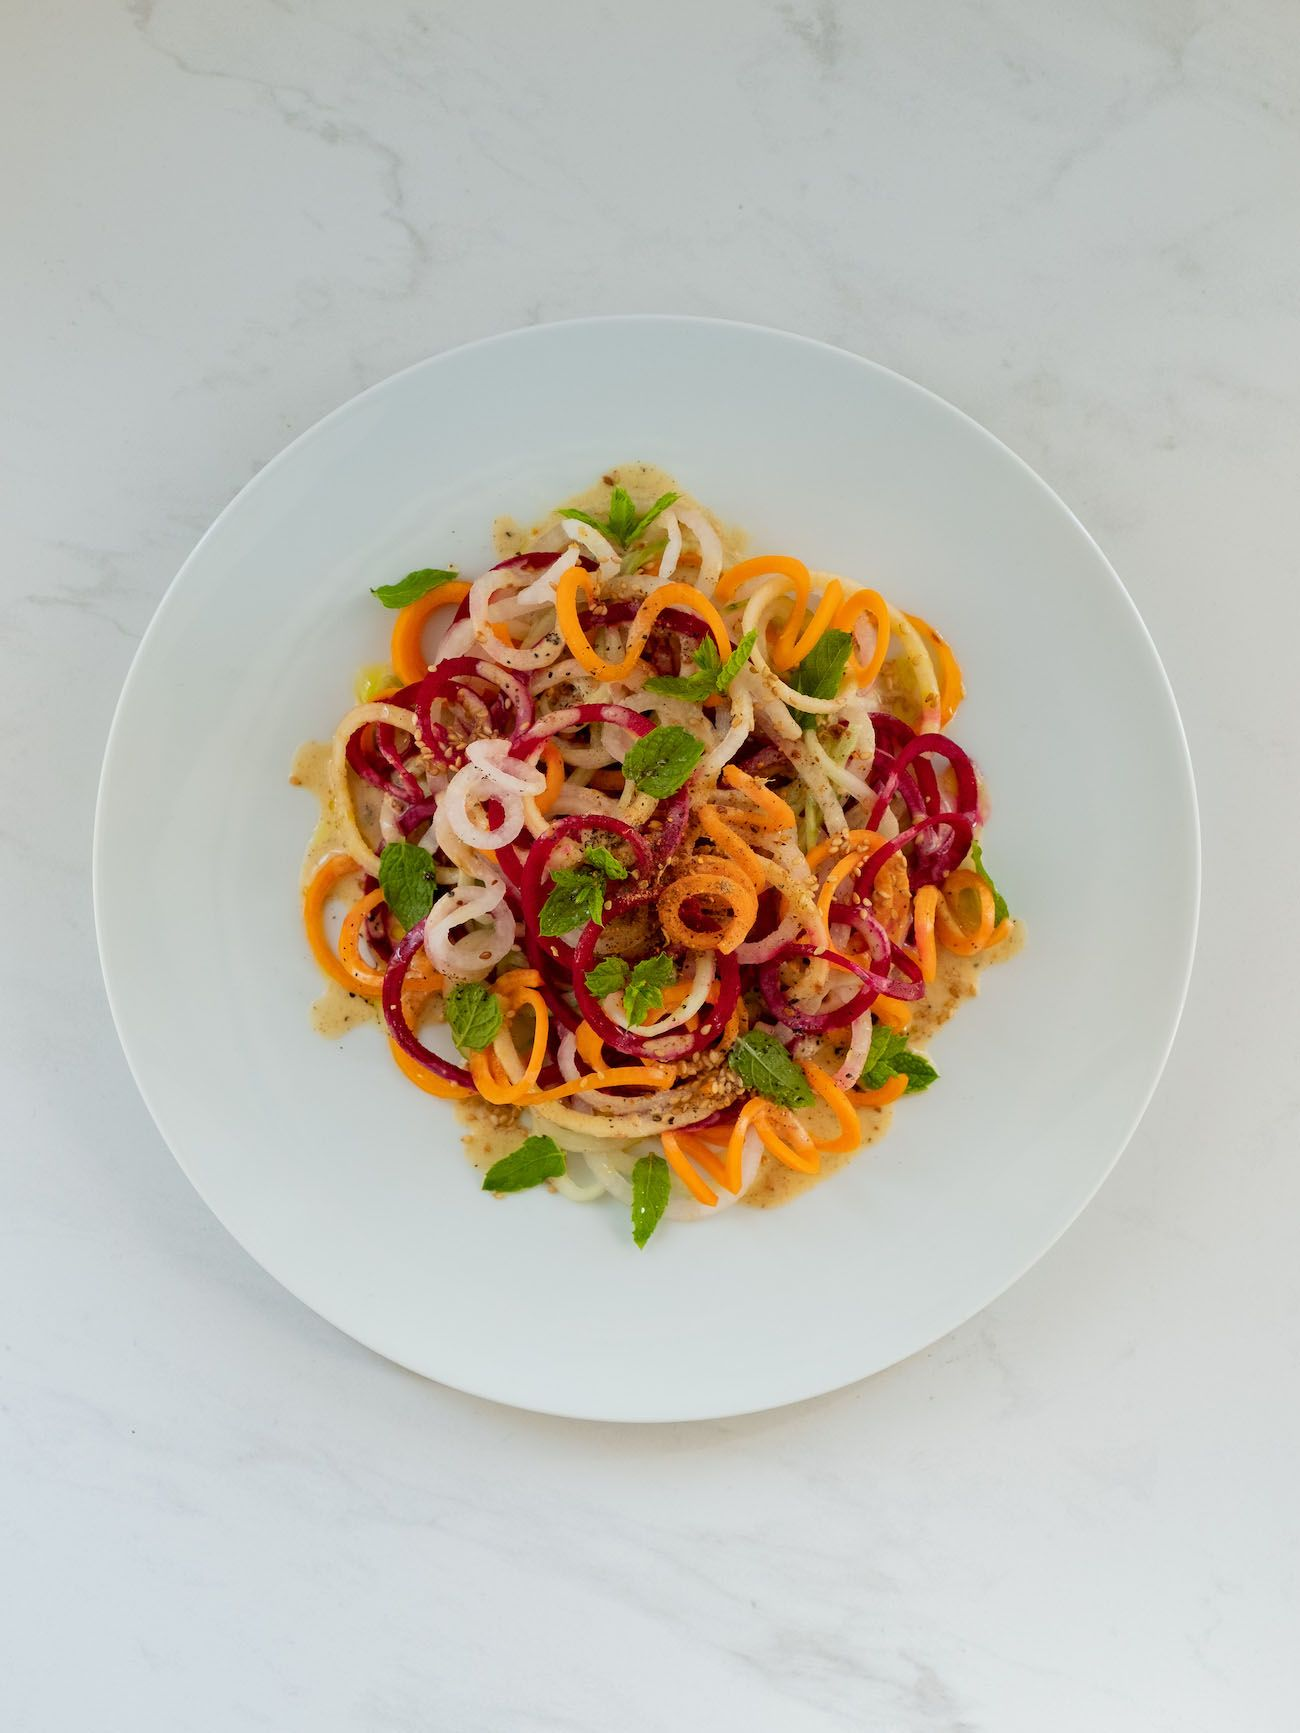 About Fuel, Foodblog, Rezept, Bunter Spiralensalat mit Tahini-Dressing, Just Spices, Rettich, Apfel, Rote Bete